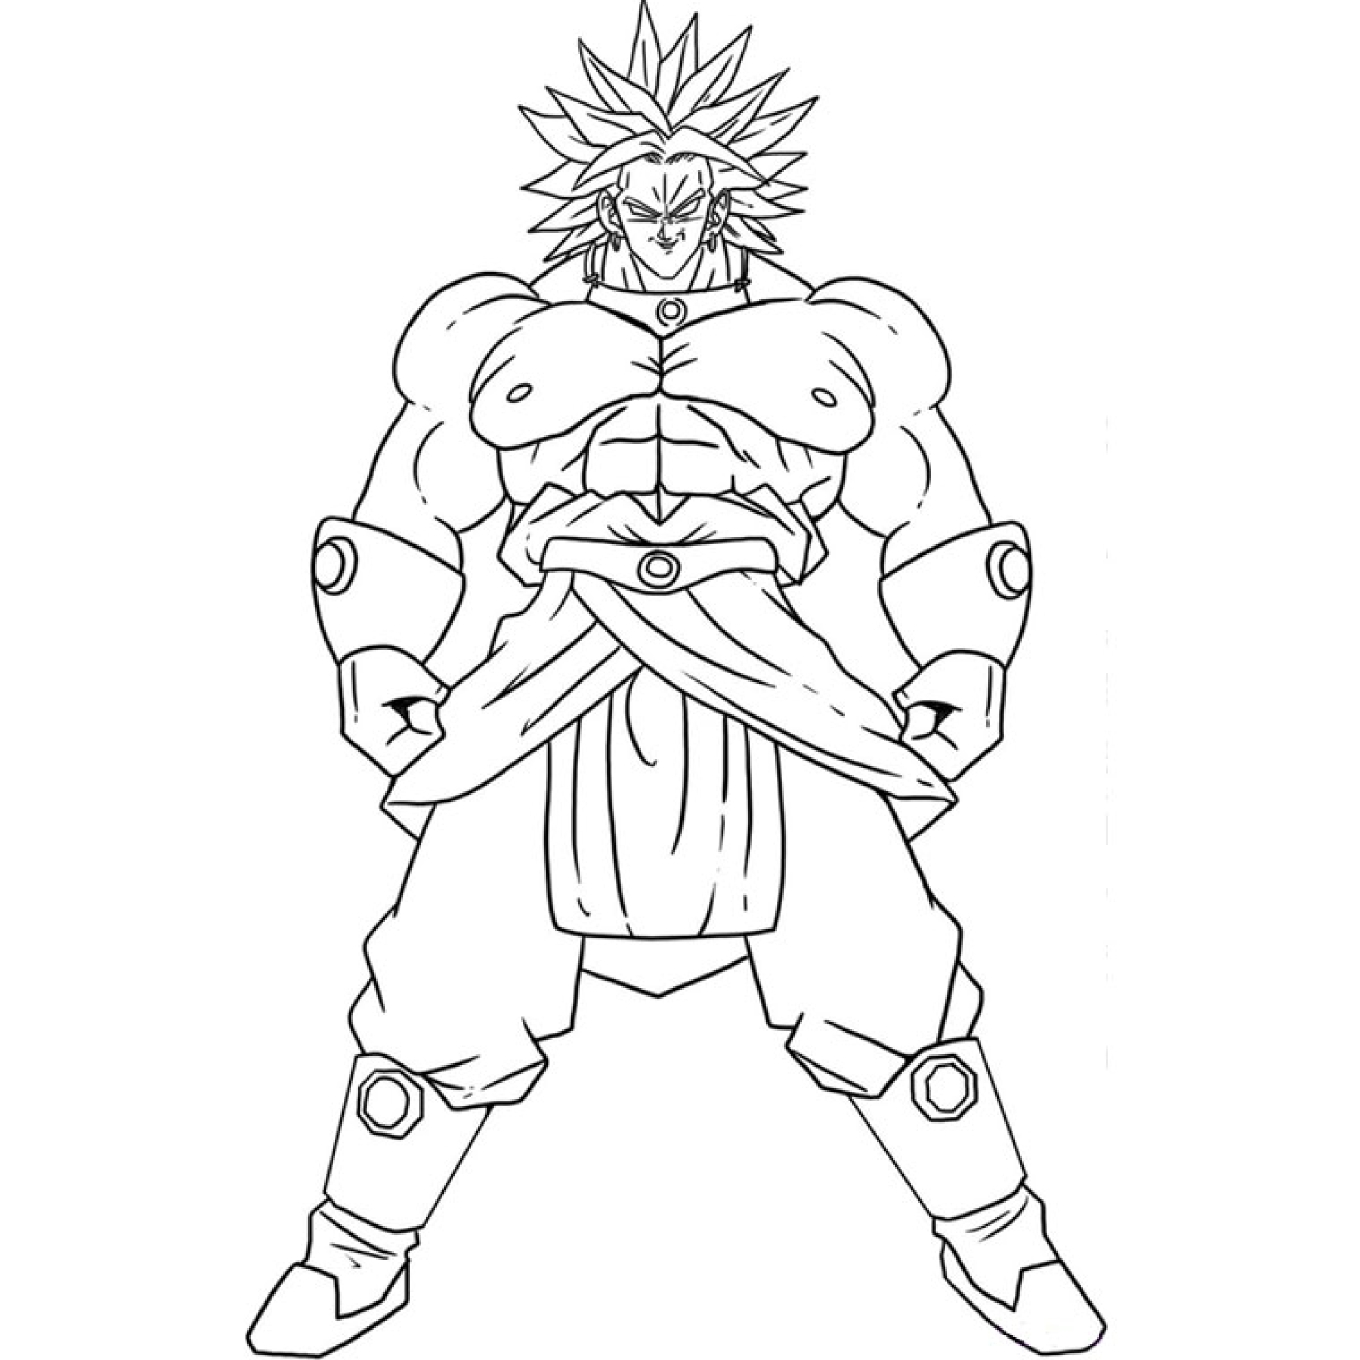 Coloriage dragon ball z broly imprimer et colorier - Coloriage dragon ball z sangoku ...